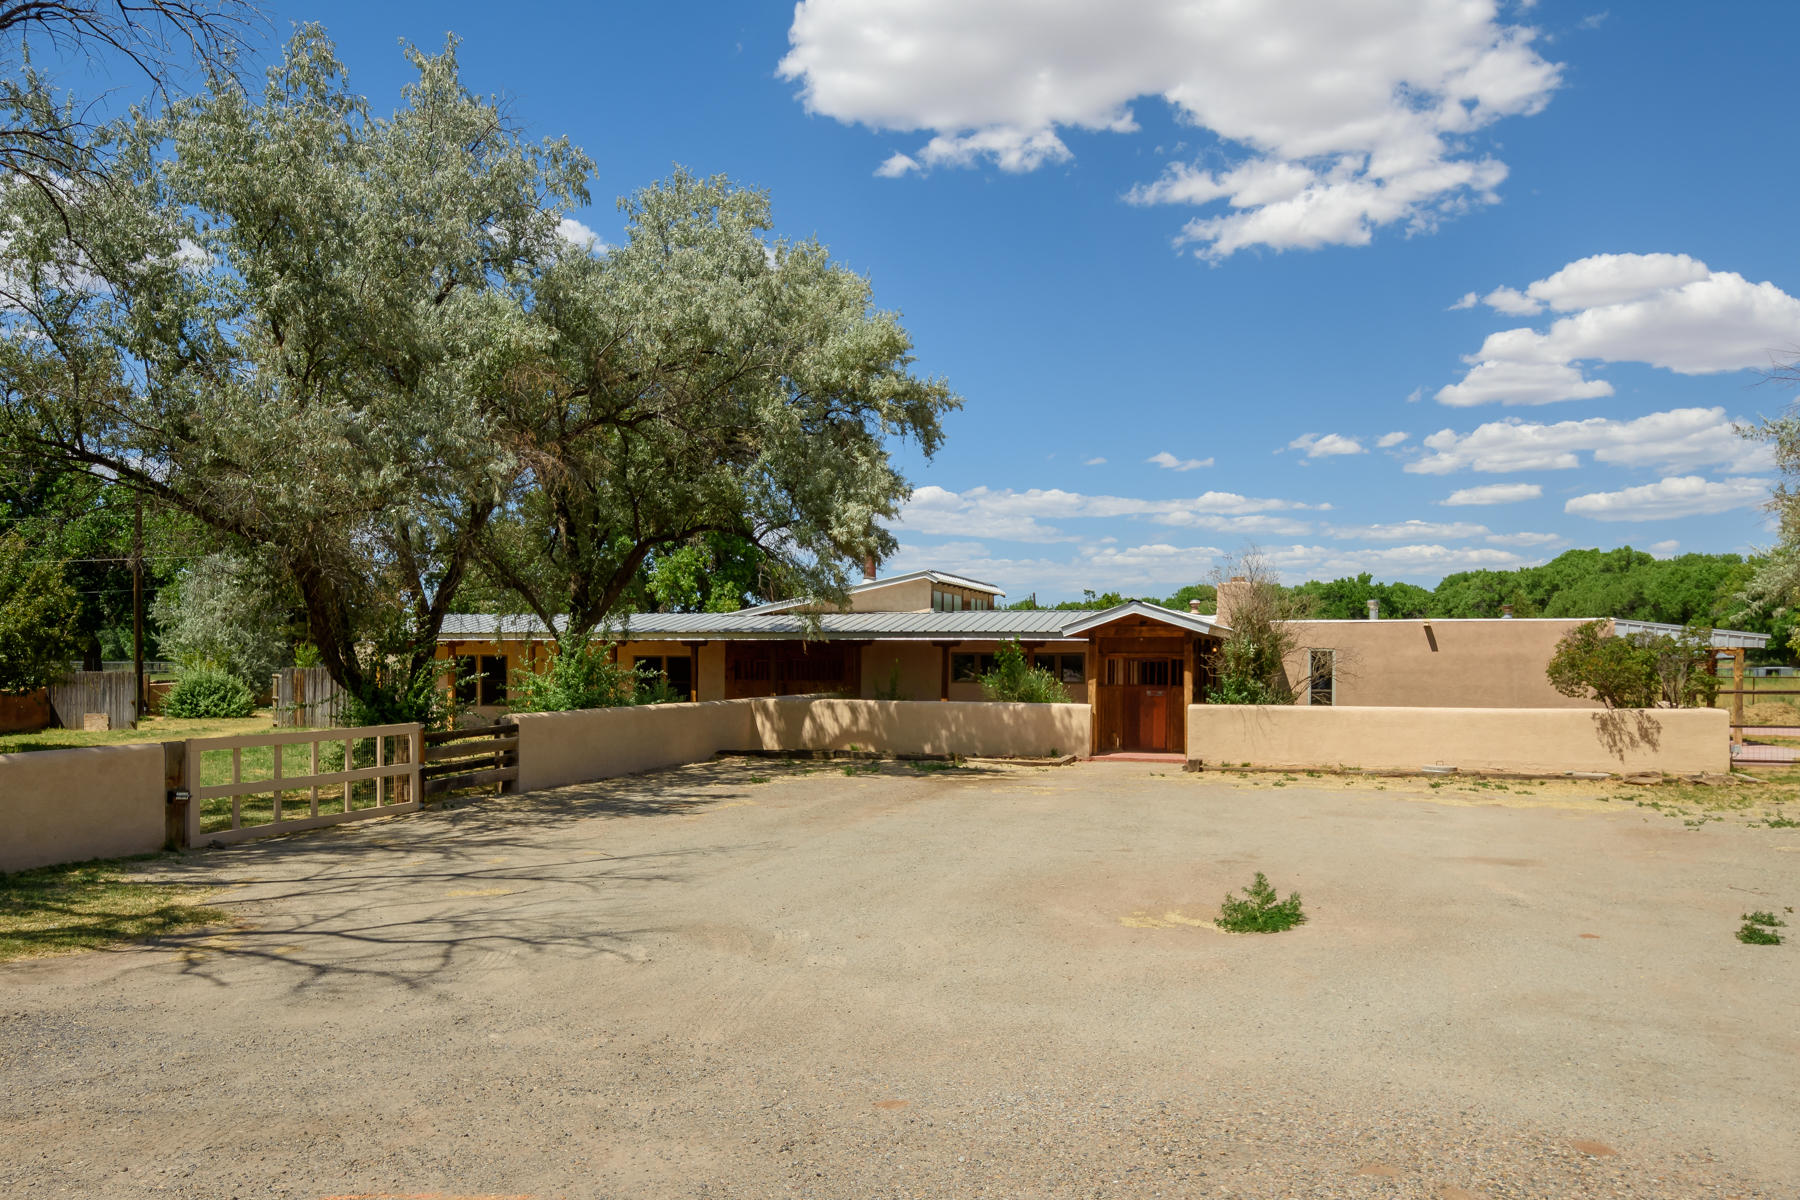 Welcome home to your new, beautiful Los Lunas hacienda on 3 acres. This home has so much to offer, beginning with the classic and subtle Southwestern touches like beamed ceilings, kiva fireplaces, and brick floors. Huge living room is flooded with natural light and leads to the kitchen/dining room combo, which lends itself to easy entertaining. Sun room is massive and can have so many uses. Master Bedroom wing includes a sitting area and an all custom tile bath and double closets. Office/bonus room can be used as a wonderful space to work, hobby or another bedroom and has its own cozy kiva. All of this, AND a 742sqft apartment perfect inlaws, older kids, guests. Horse stalls, storage, carports, and so much space! You are going to love it here!